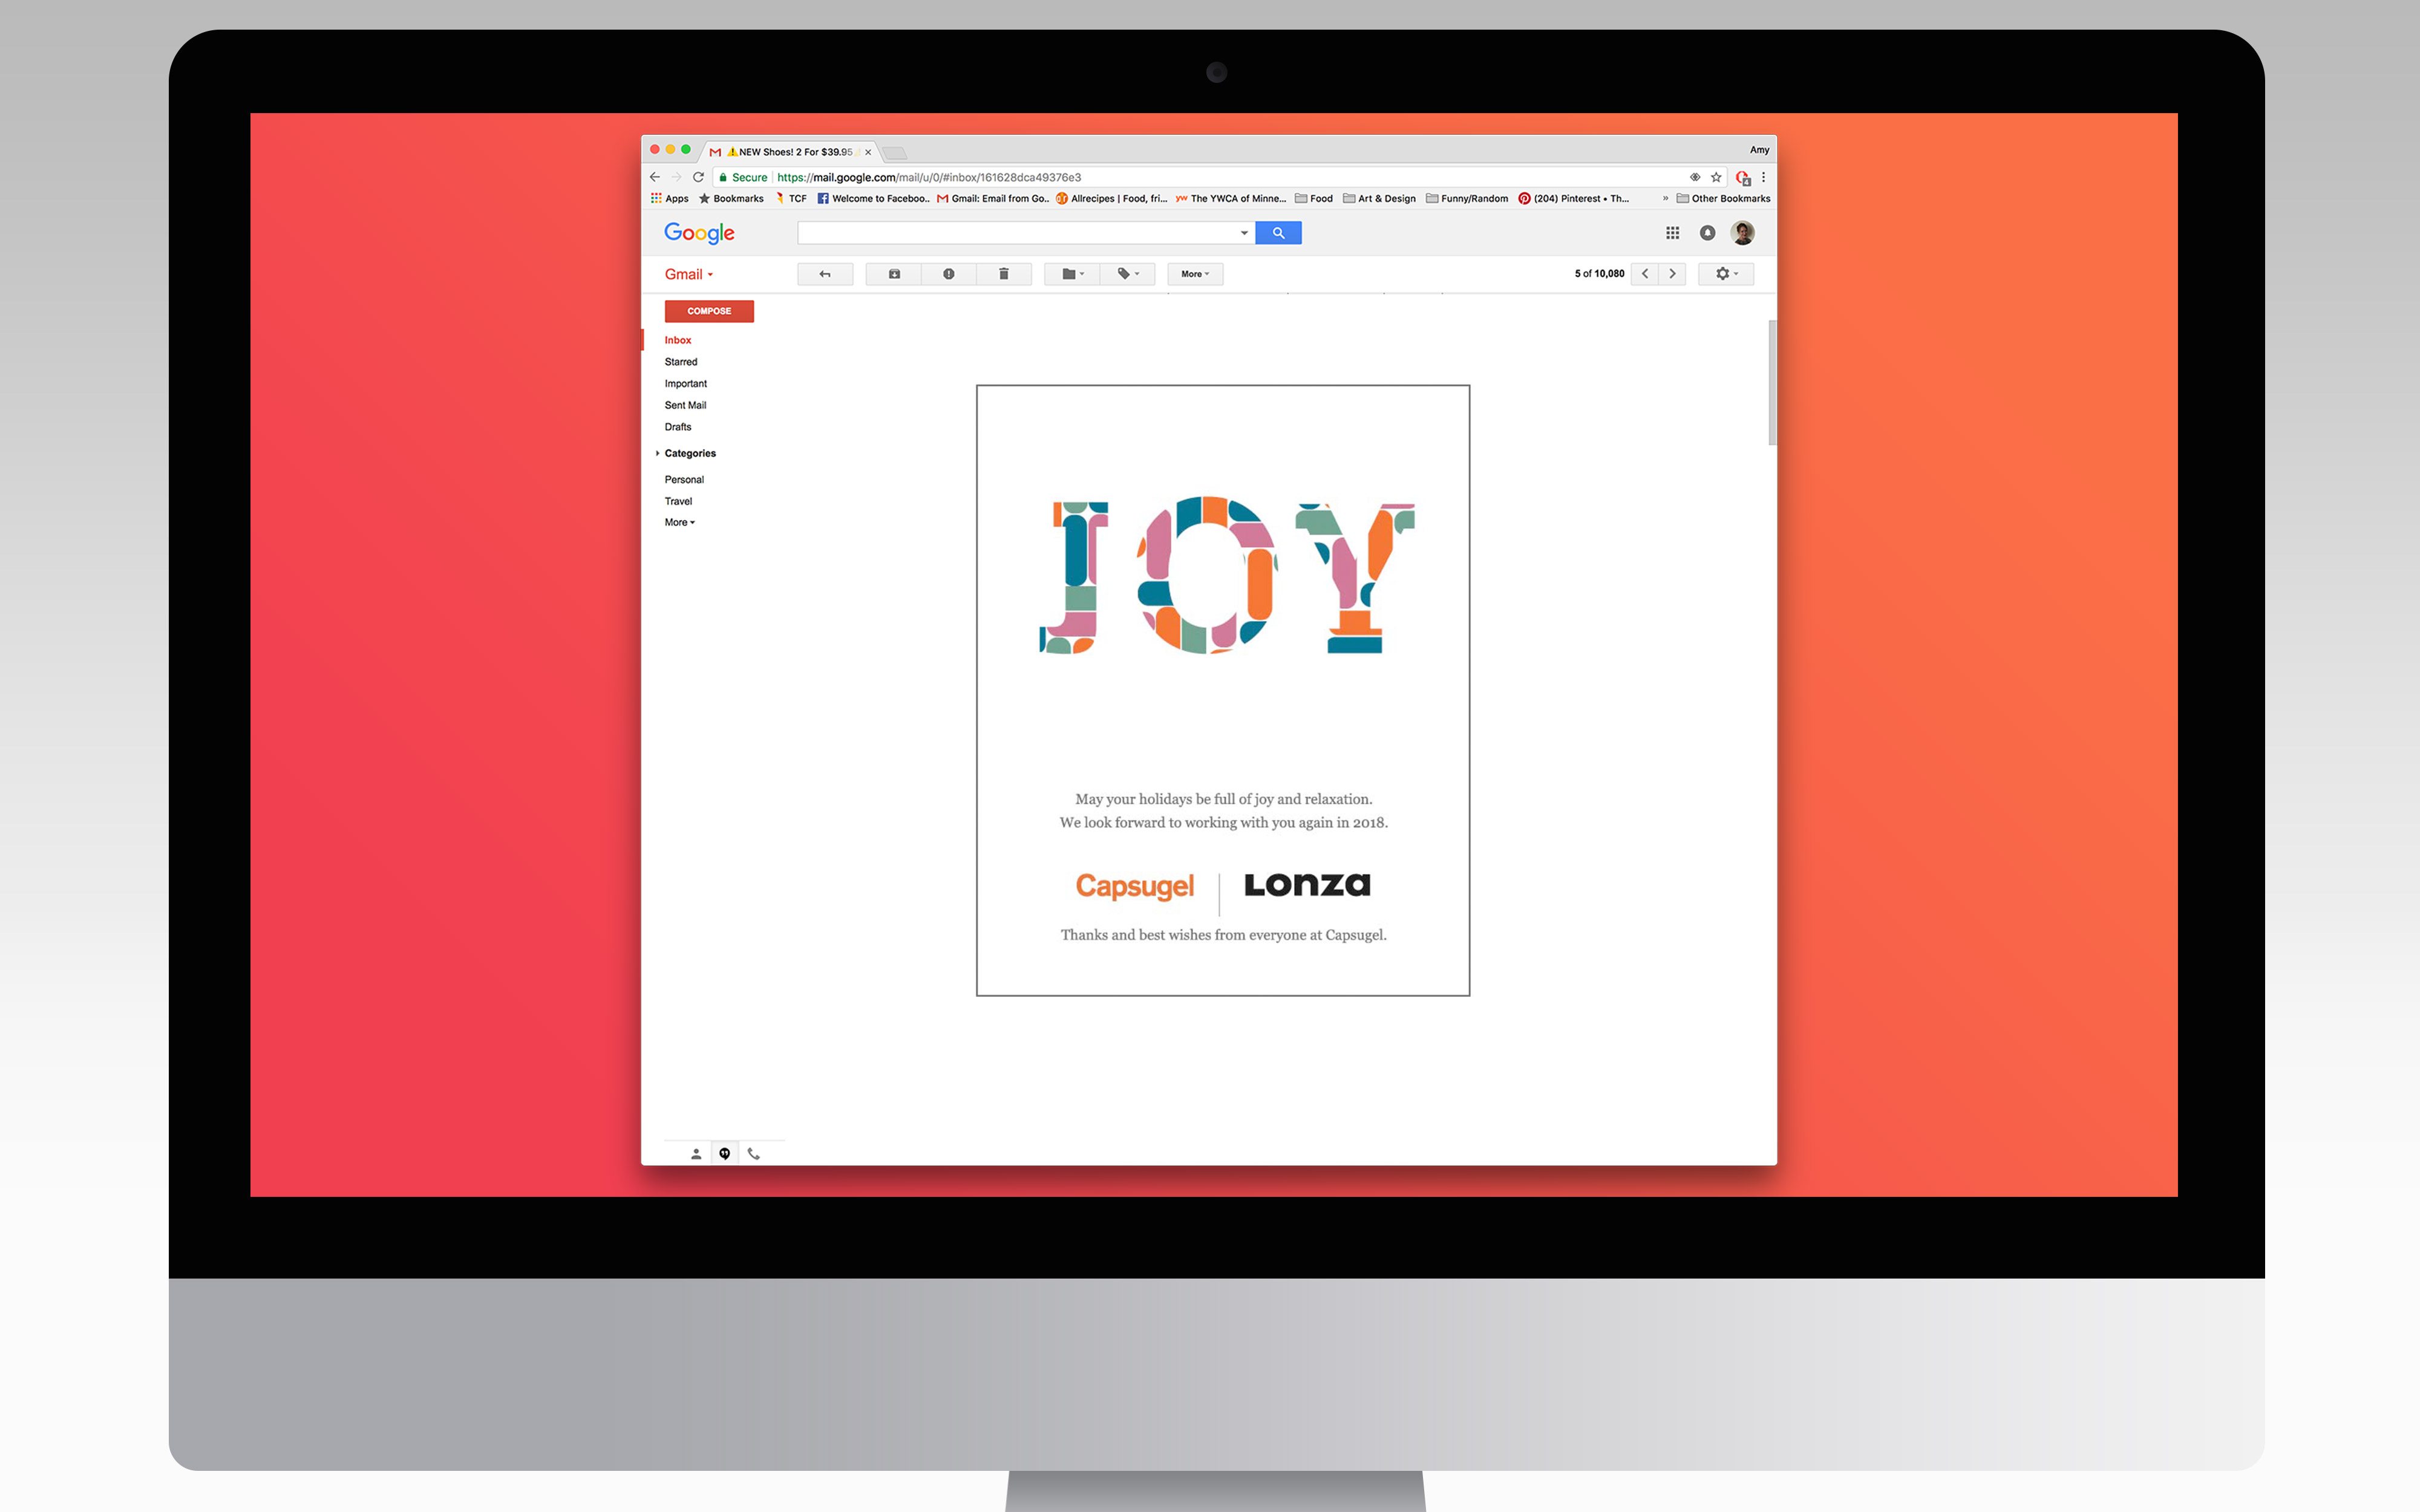 Capsugel holiday email